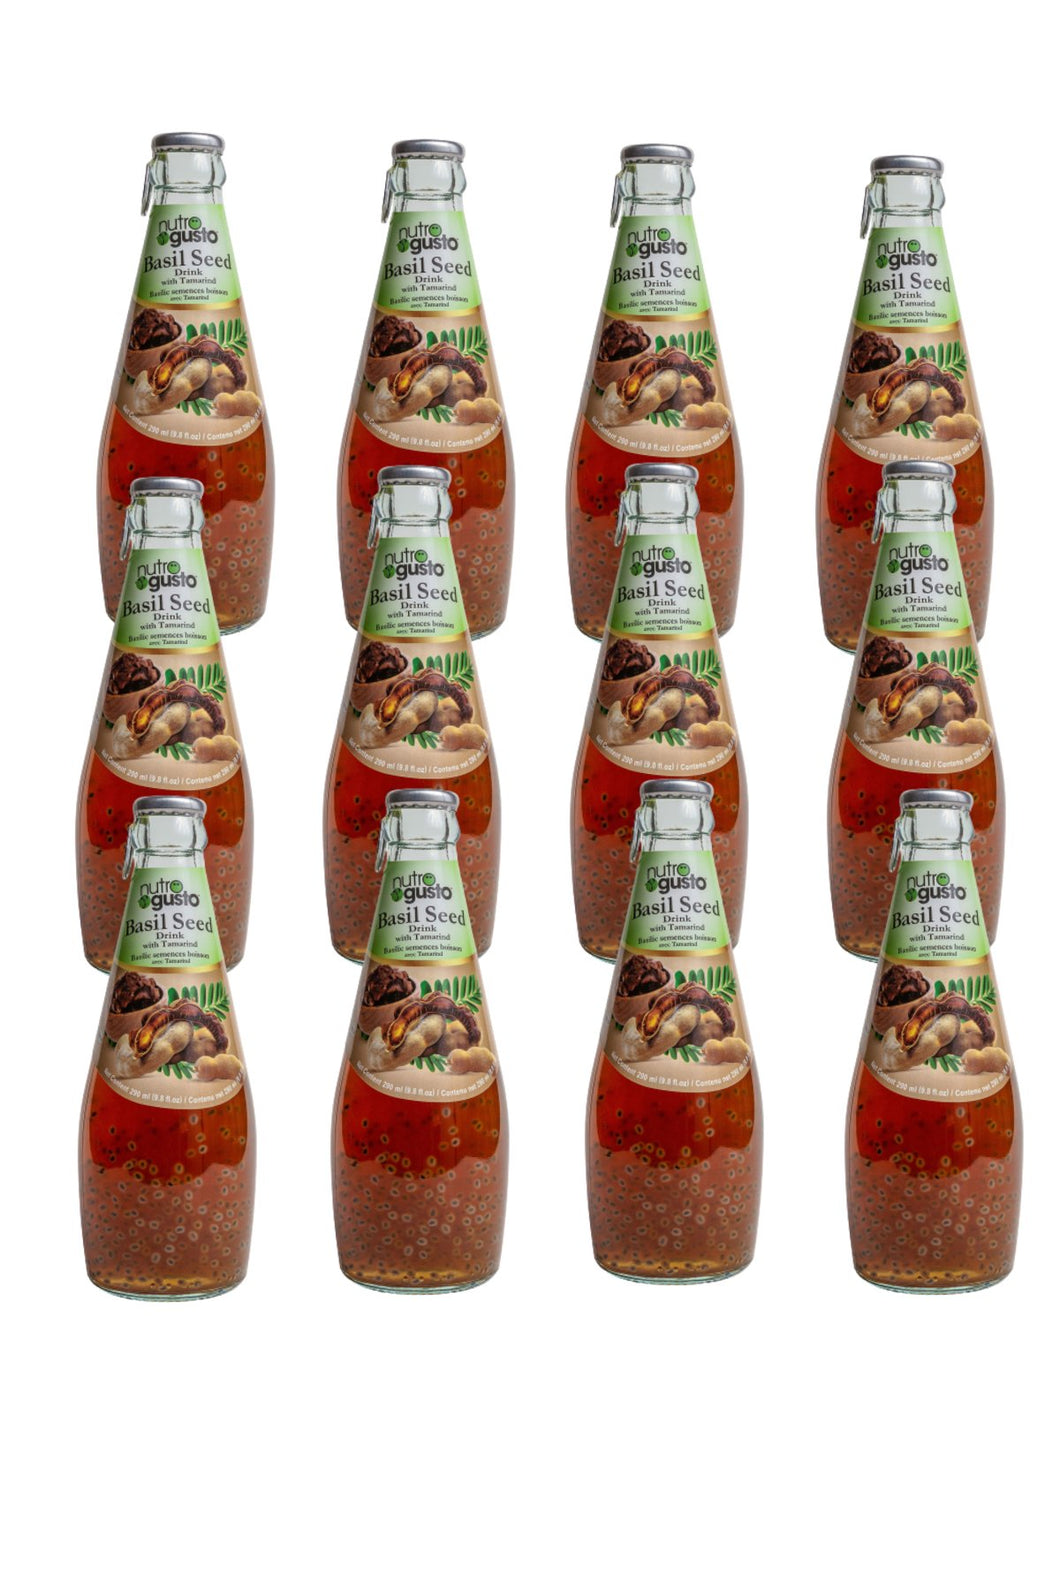 NutroGusto Basil Seed Drink with Tamarind 290ml - 12 pack